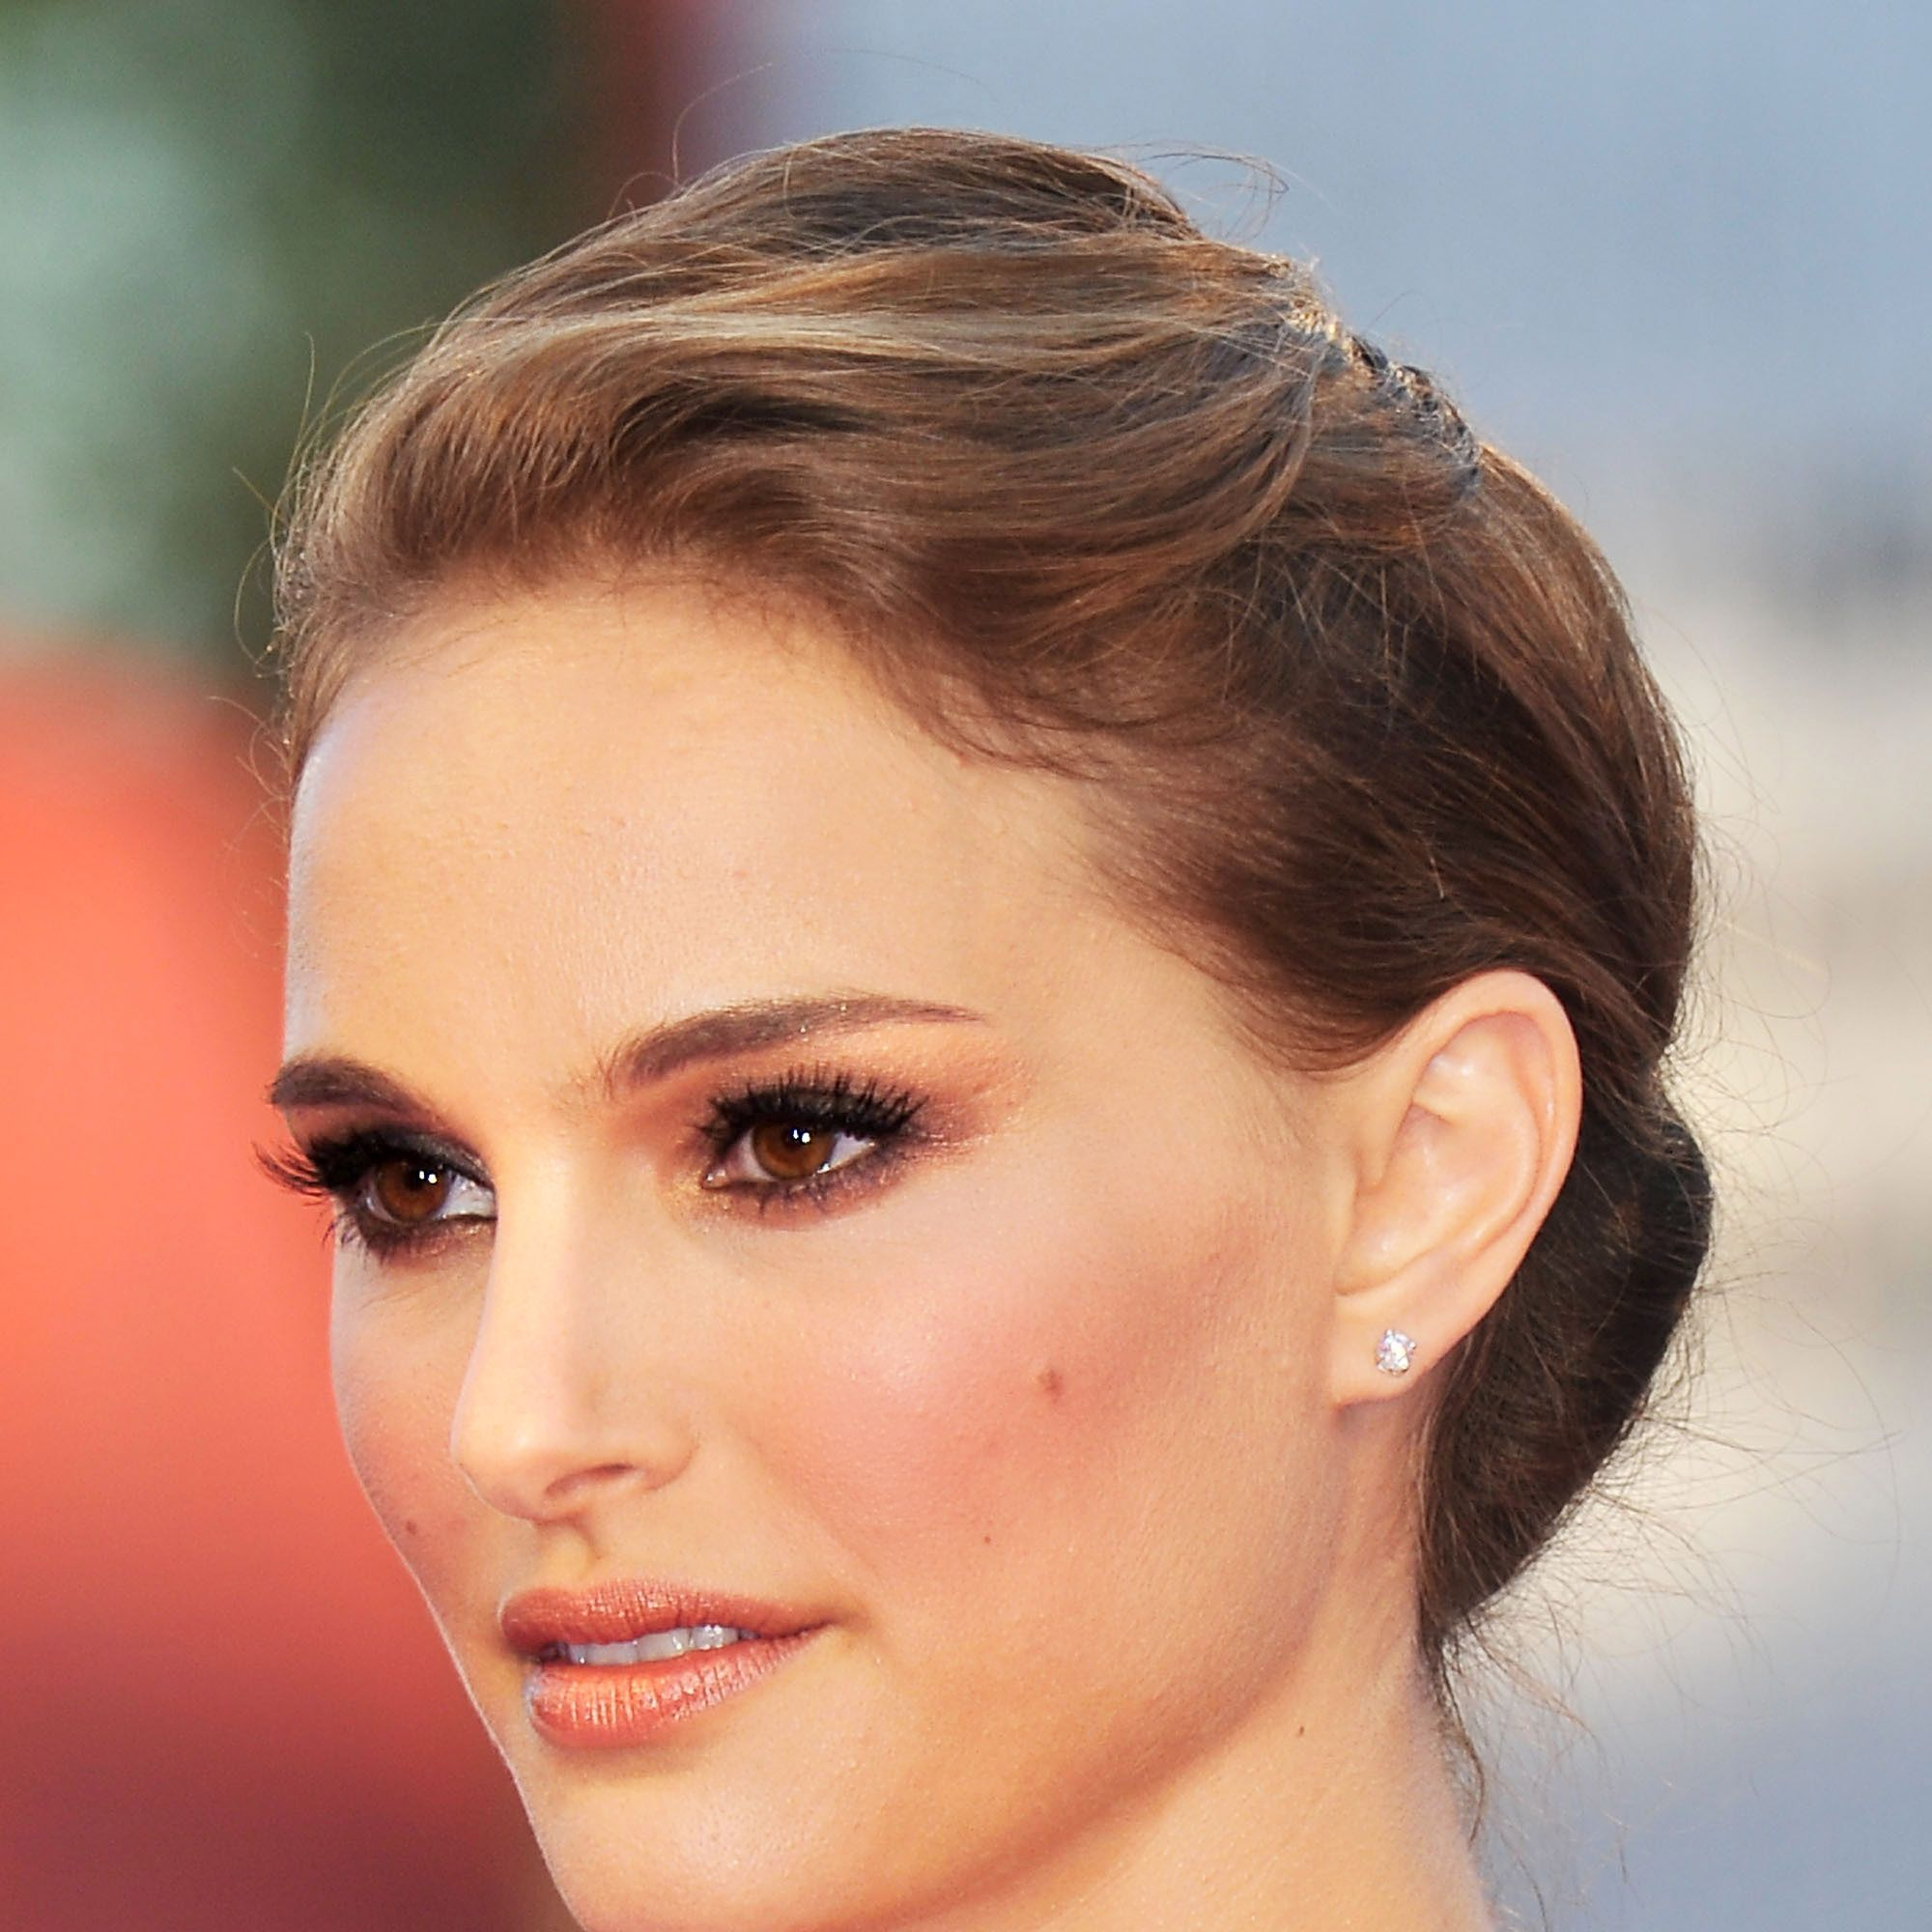 """VENICE, ITALY - SEPTEMBER 01:  Actress Natalie Portman attends the Opening Ceremony and """"Black Swan"""" premiere during the 67th Venice Film Festival at the Sala Grande Palazzo Del Cinema on September 1, 2010 in Venice, Italy.  (Photo by Pascal Le Segretain/Getty Images) *** Local Caption *** Natalie Portman"""